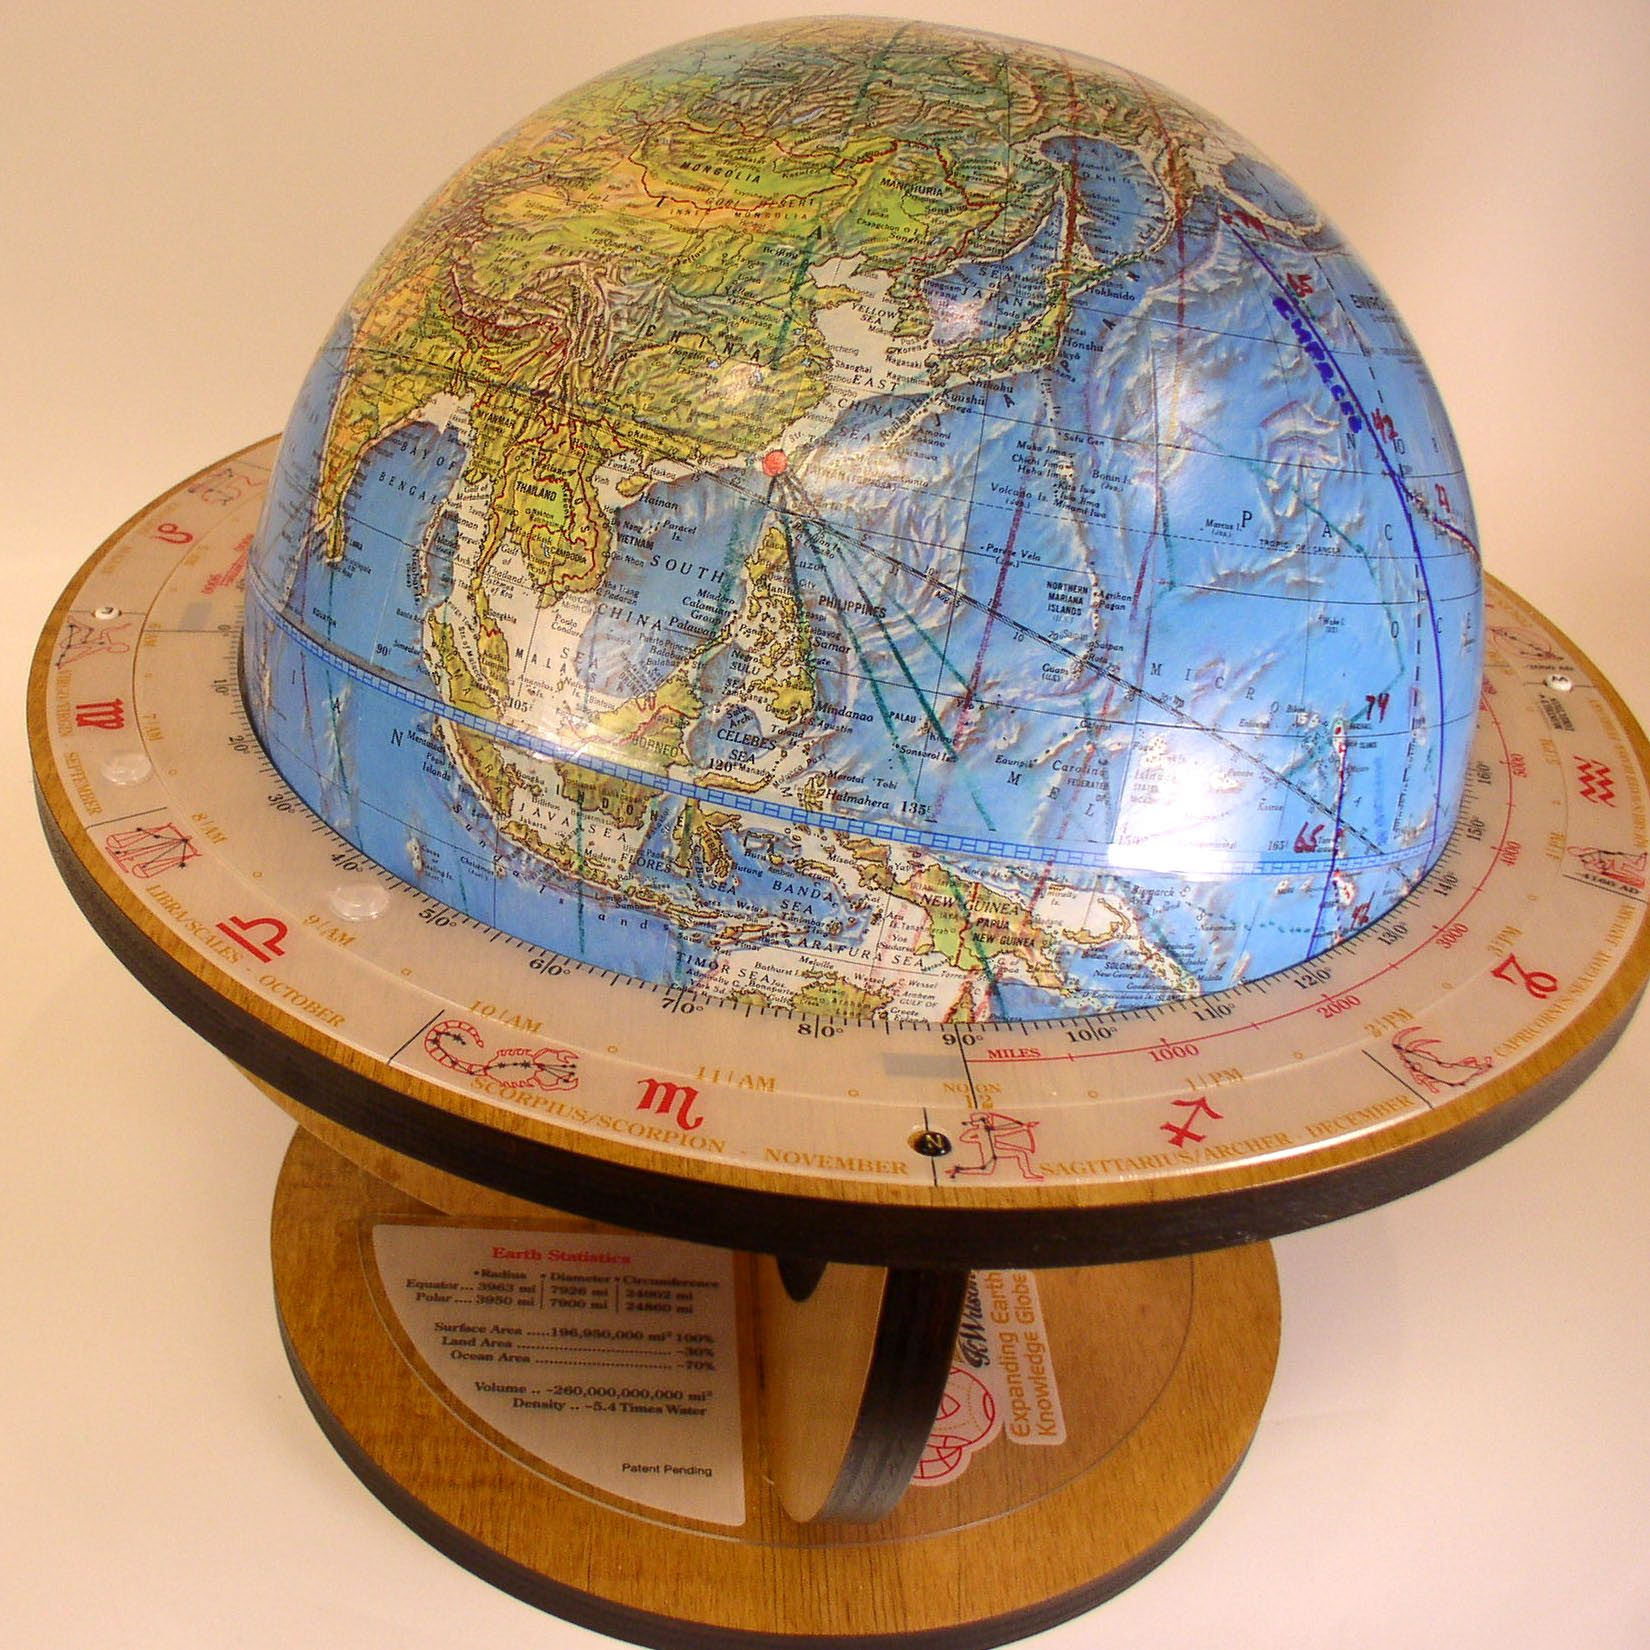 Pin by Kathy Oman on Globes and maps and books and Globes some